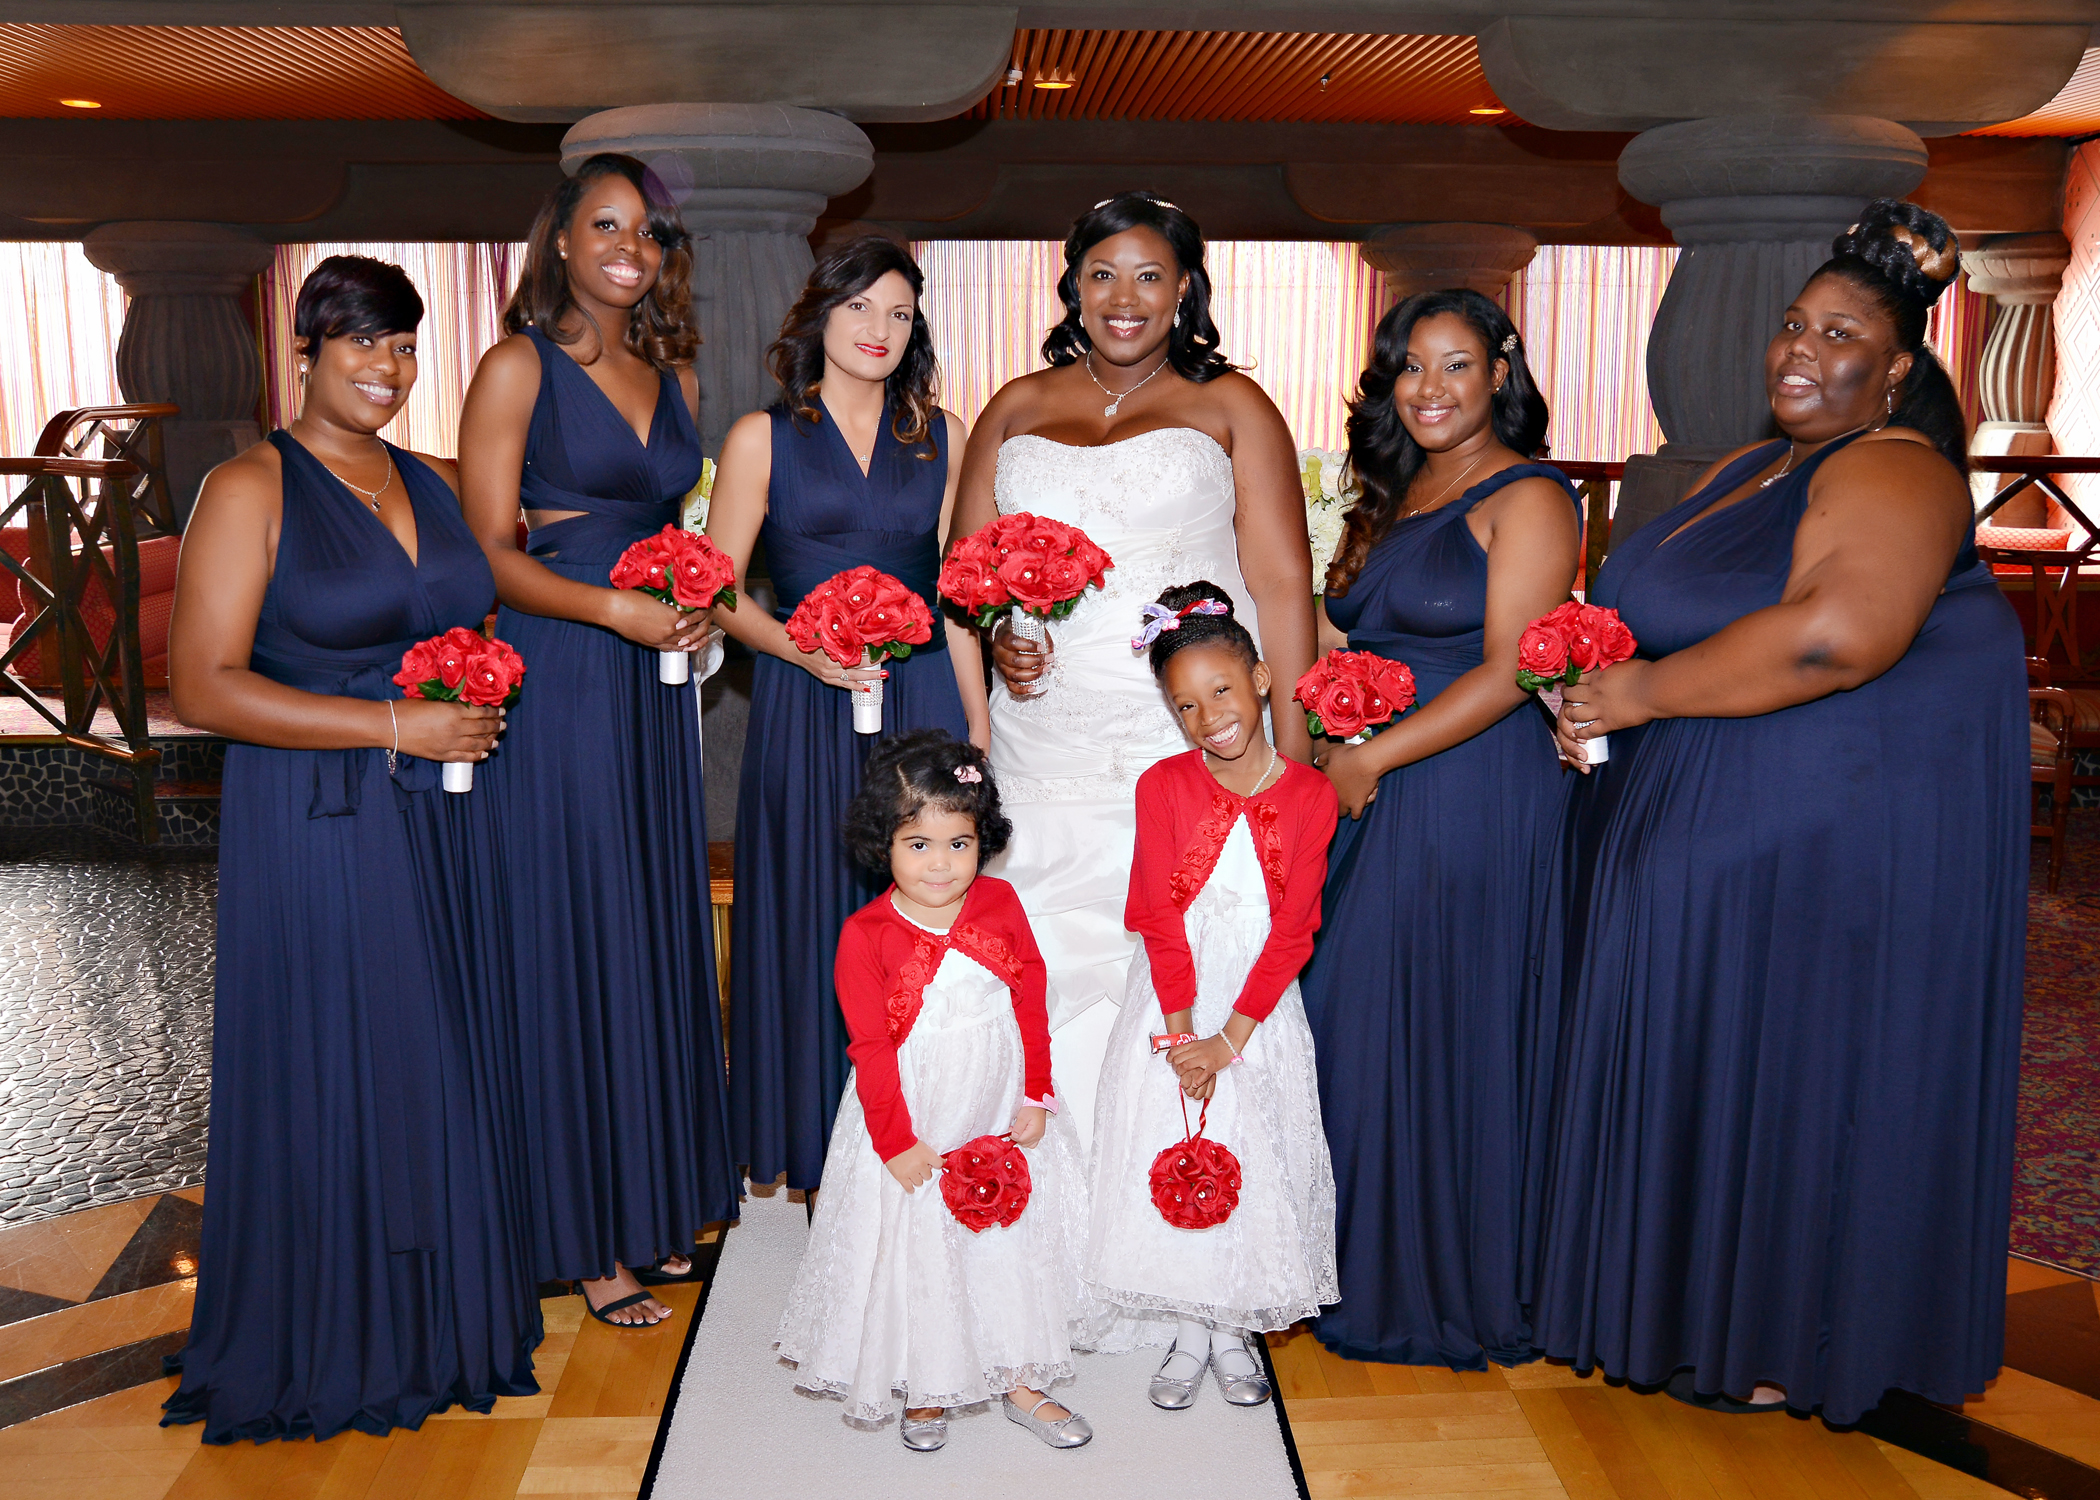 My Carnival Fascination embarkation day wedding Im Married pics included